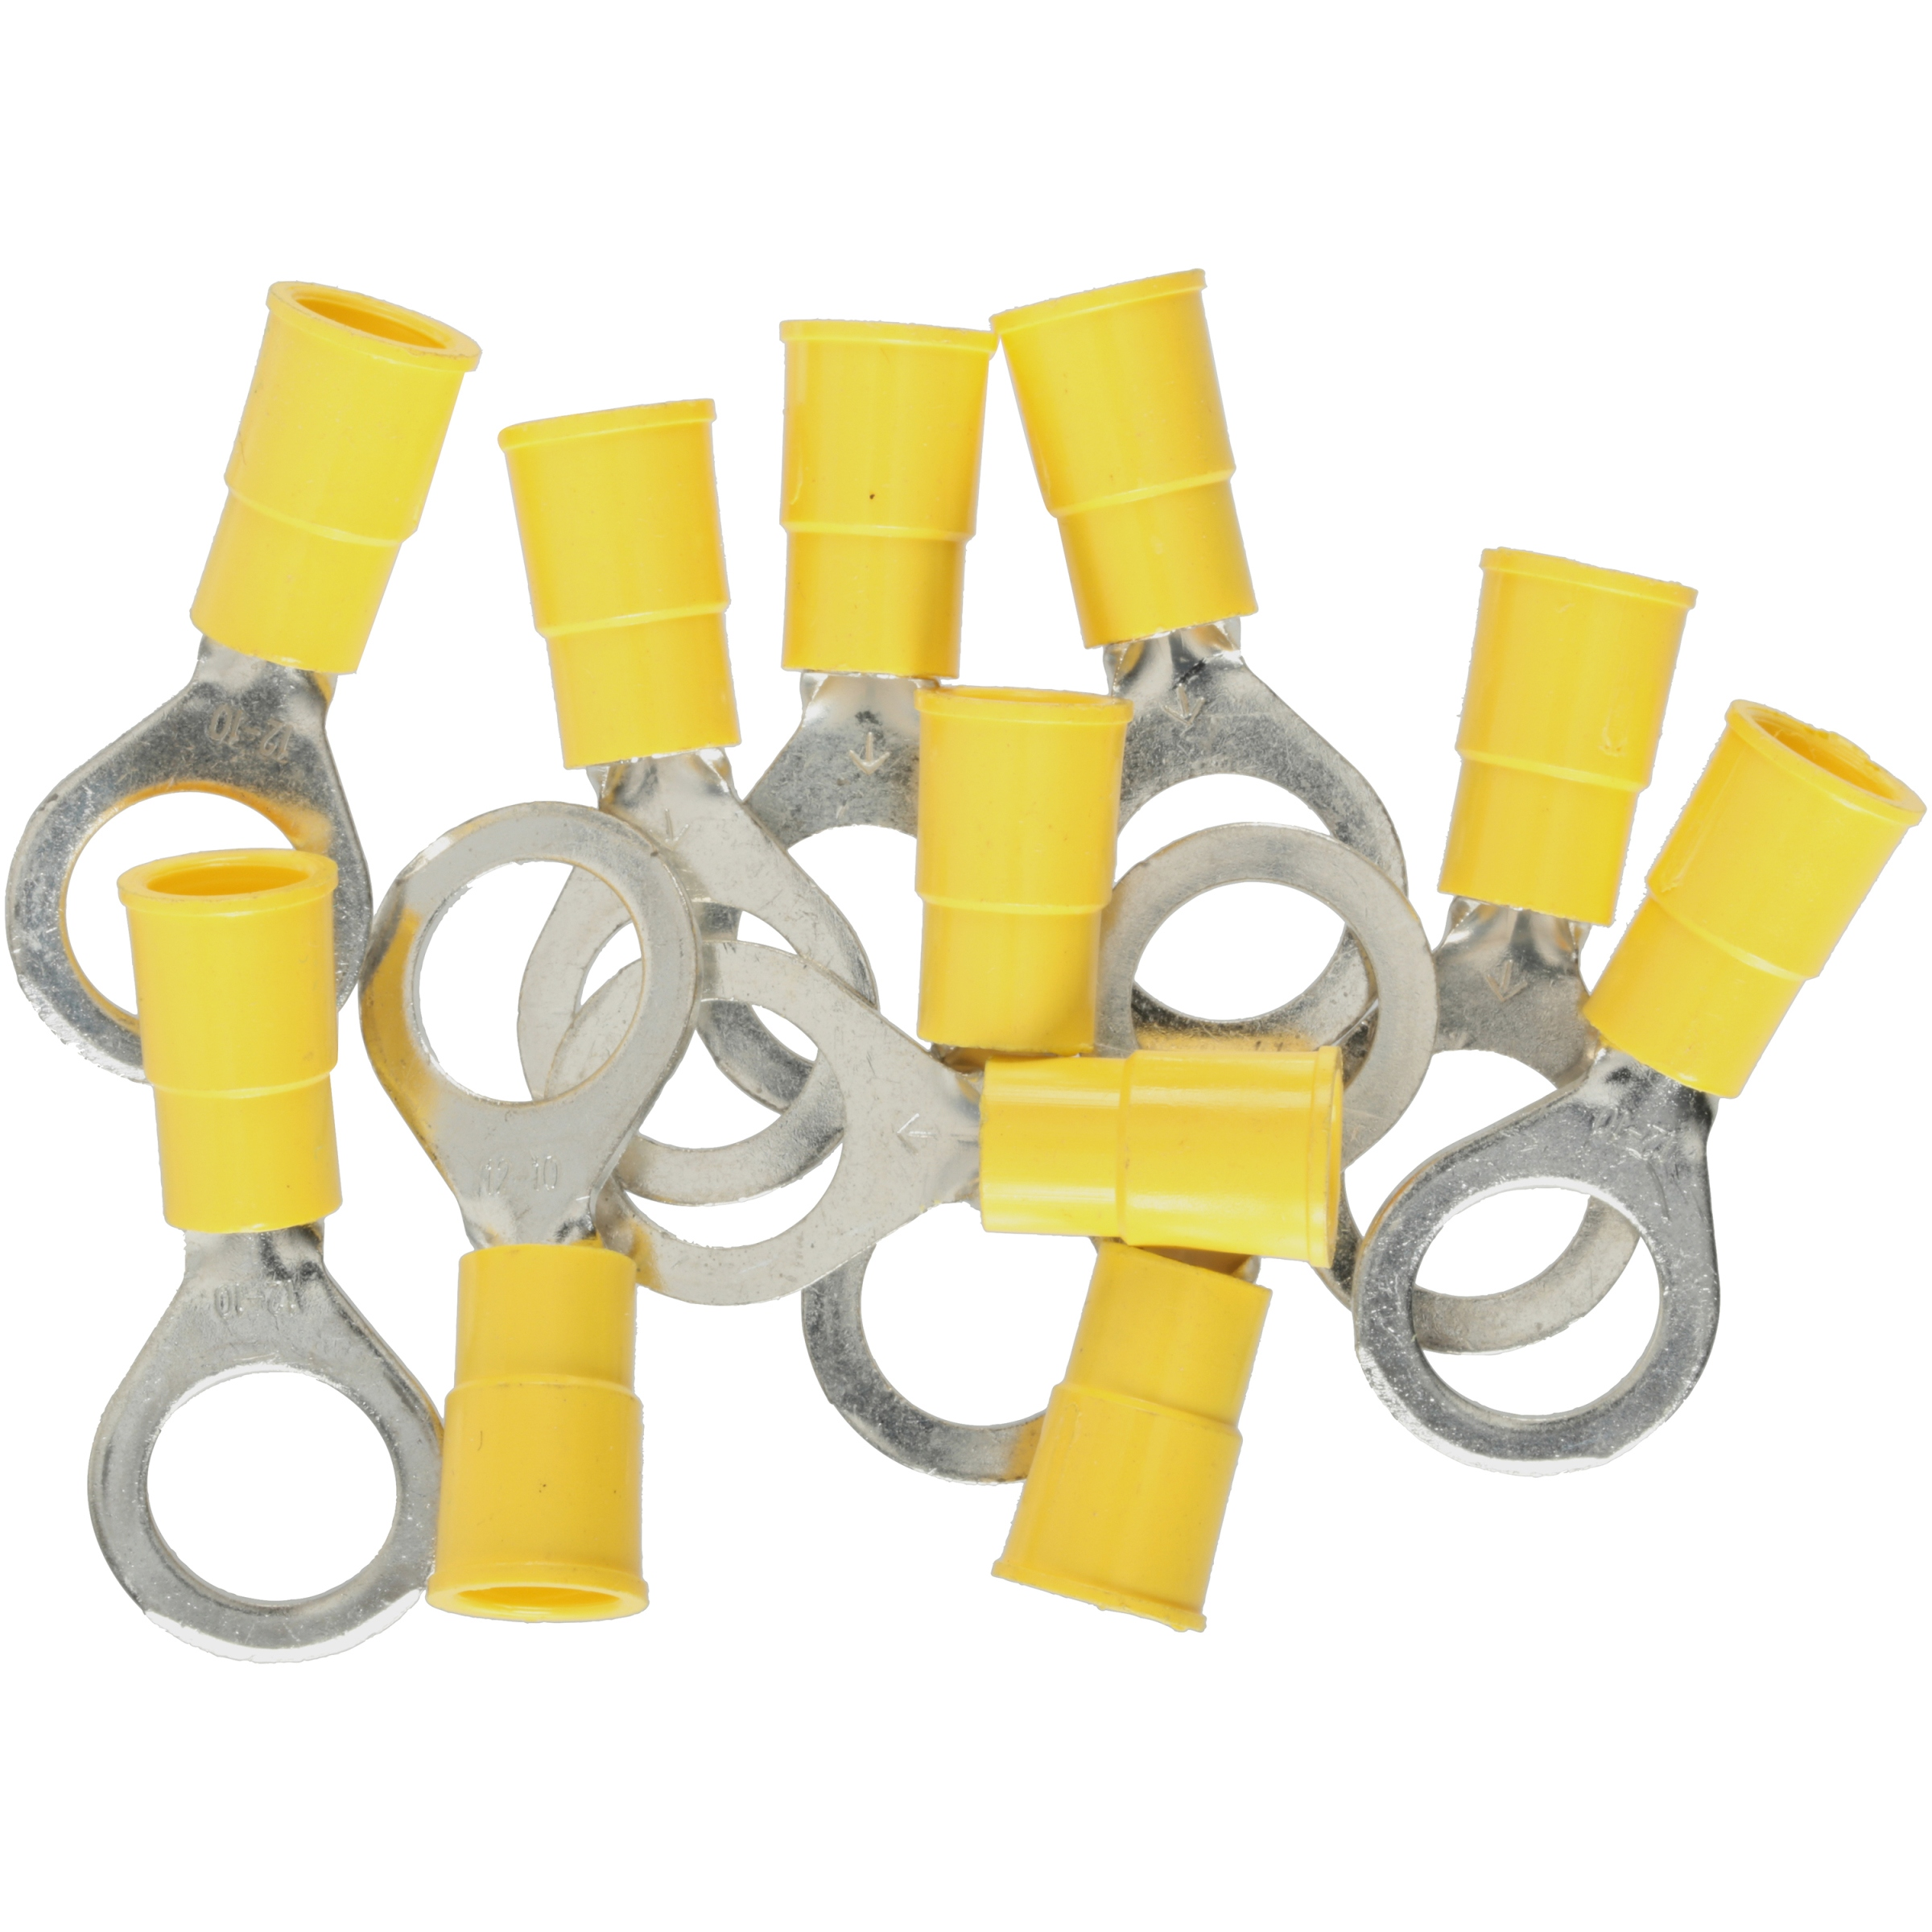 3M Ring Connects Wire Connectors 9 ct Pack